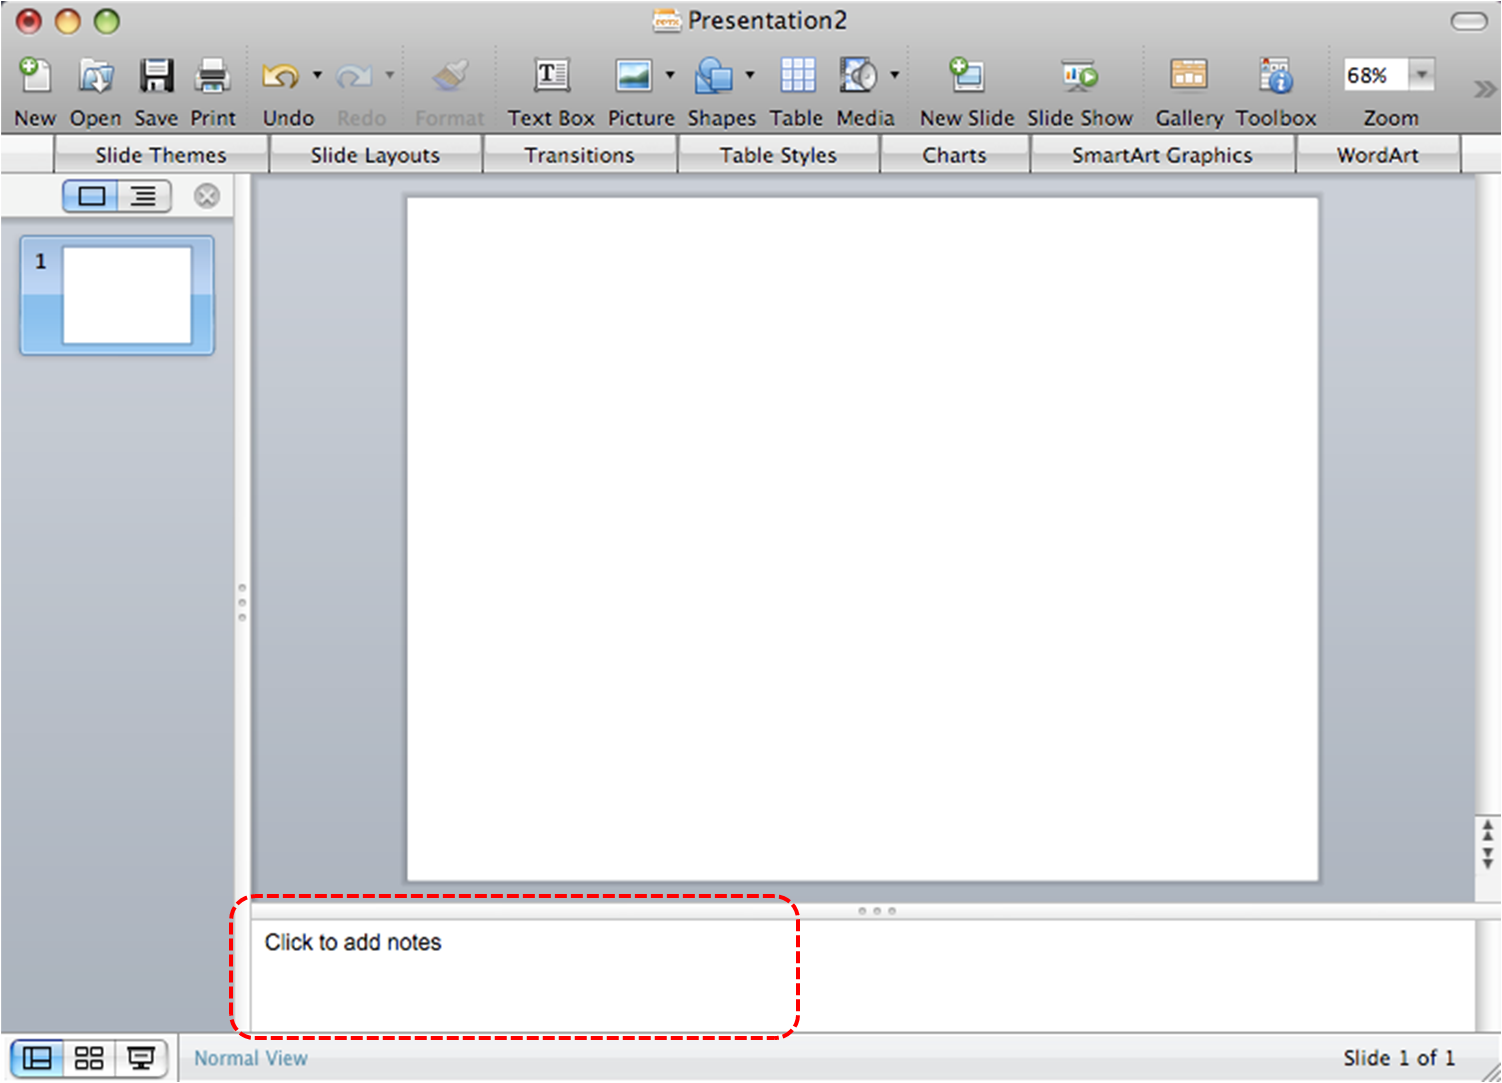 Image demonstrates location of Notes Pane in the normal view.